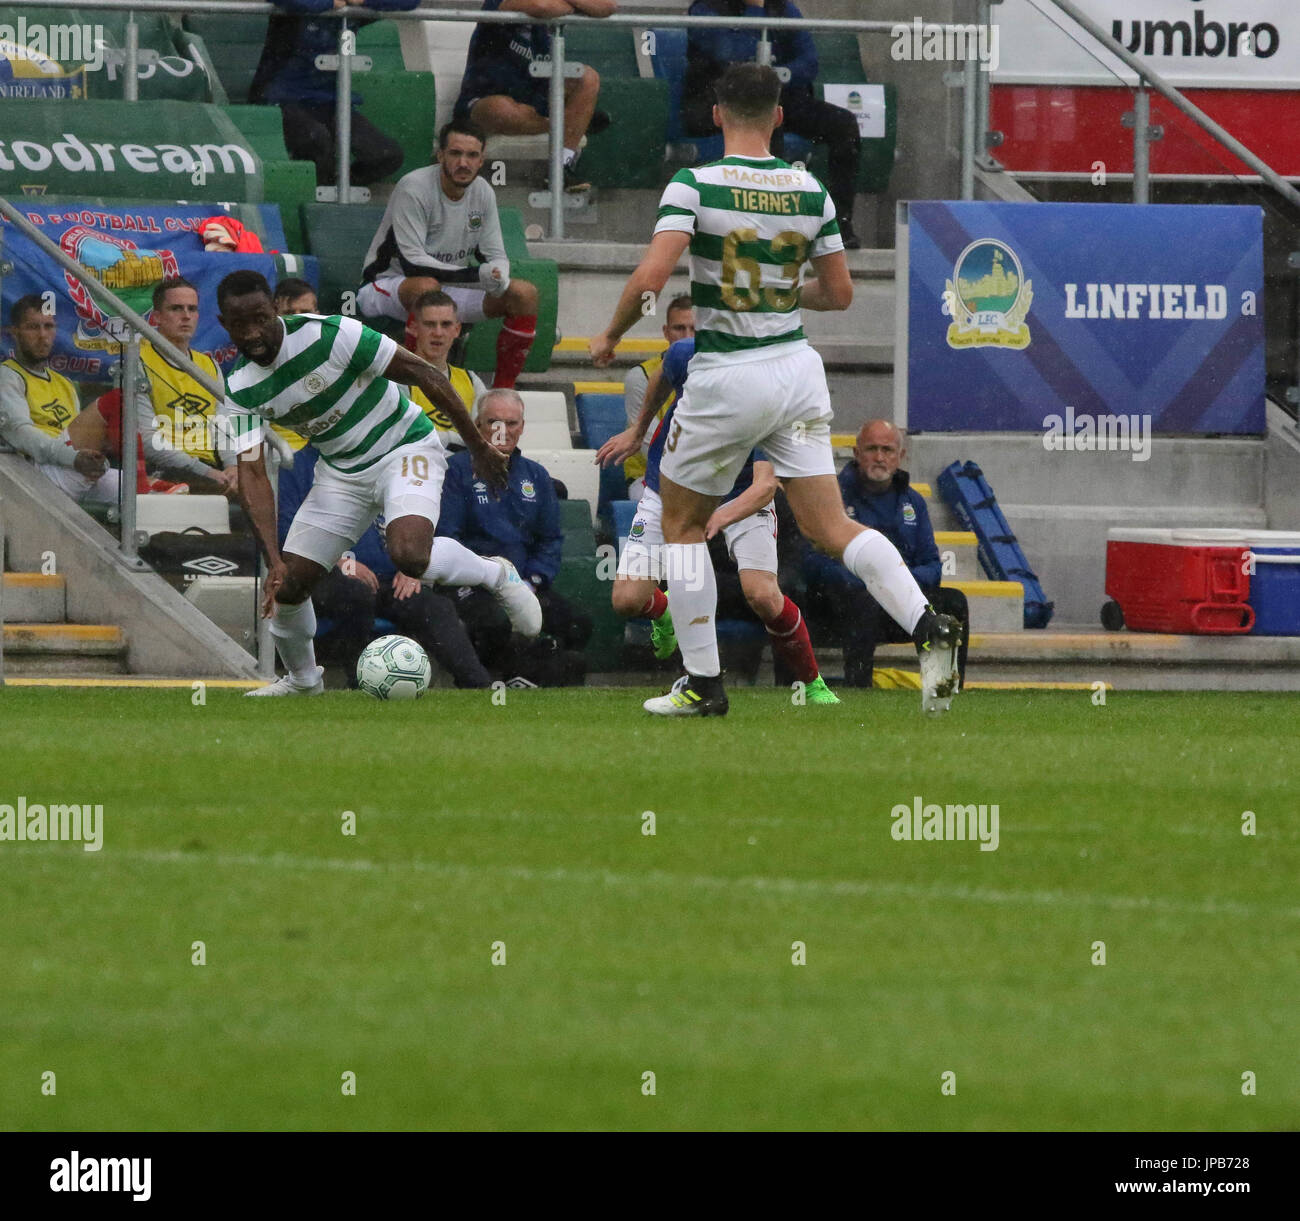 Windsor Park, Belfast, Northern Ireland. 14th July. Linfield 0 Celtic 2. Celtic's Moussa Dembele (10) in action. - Stock Image